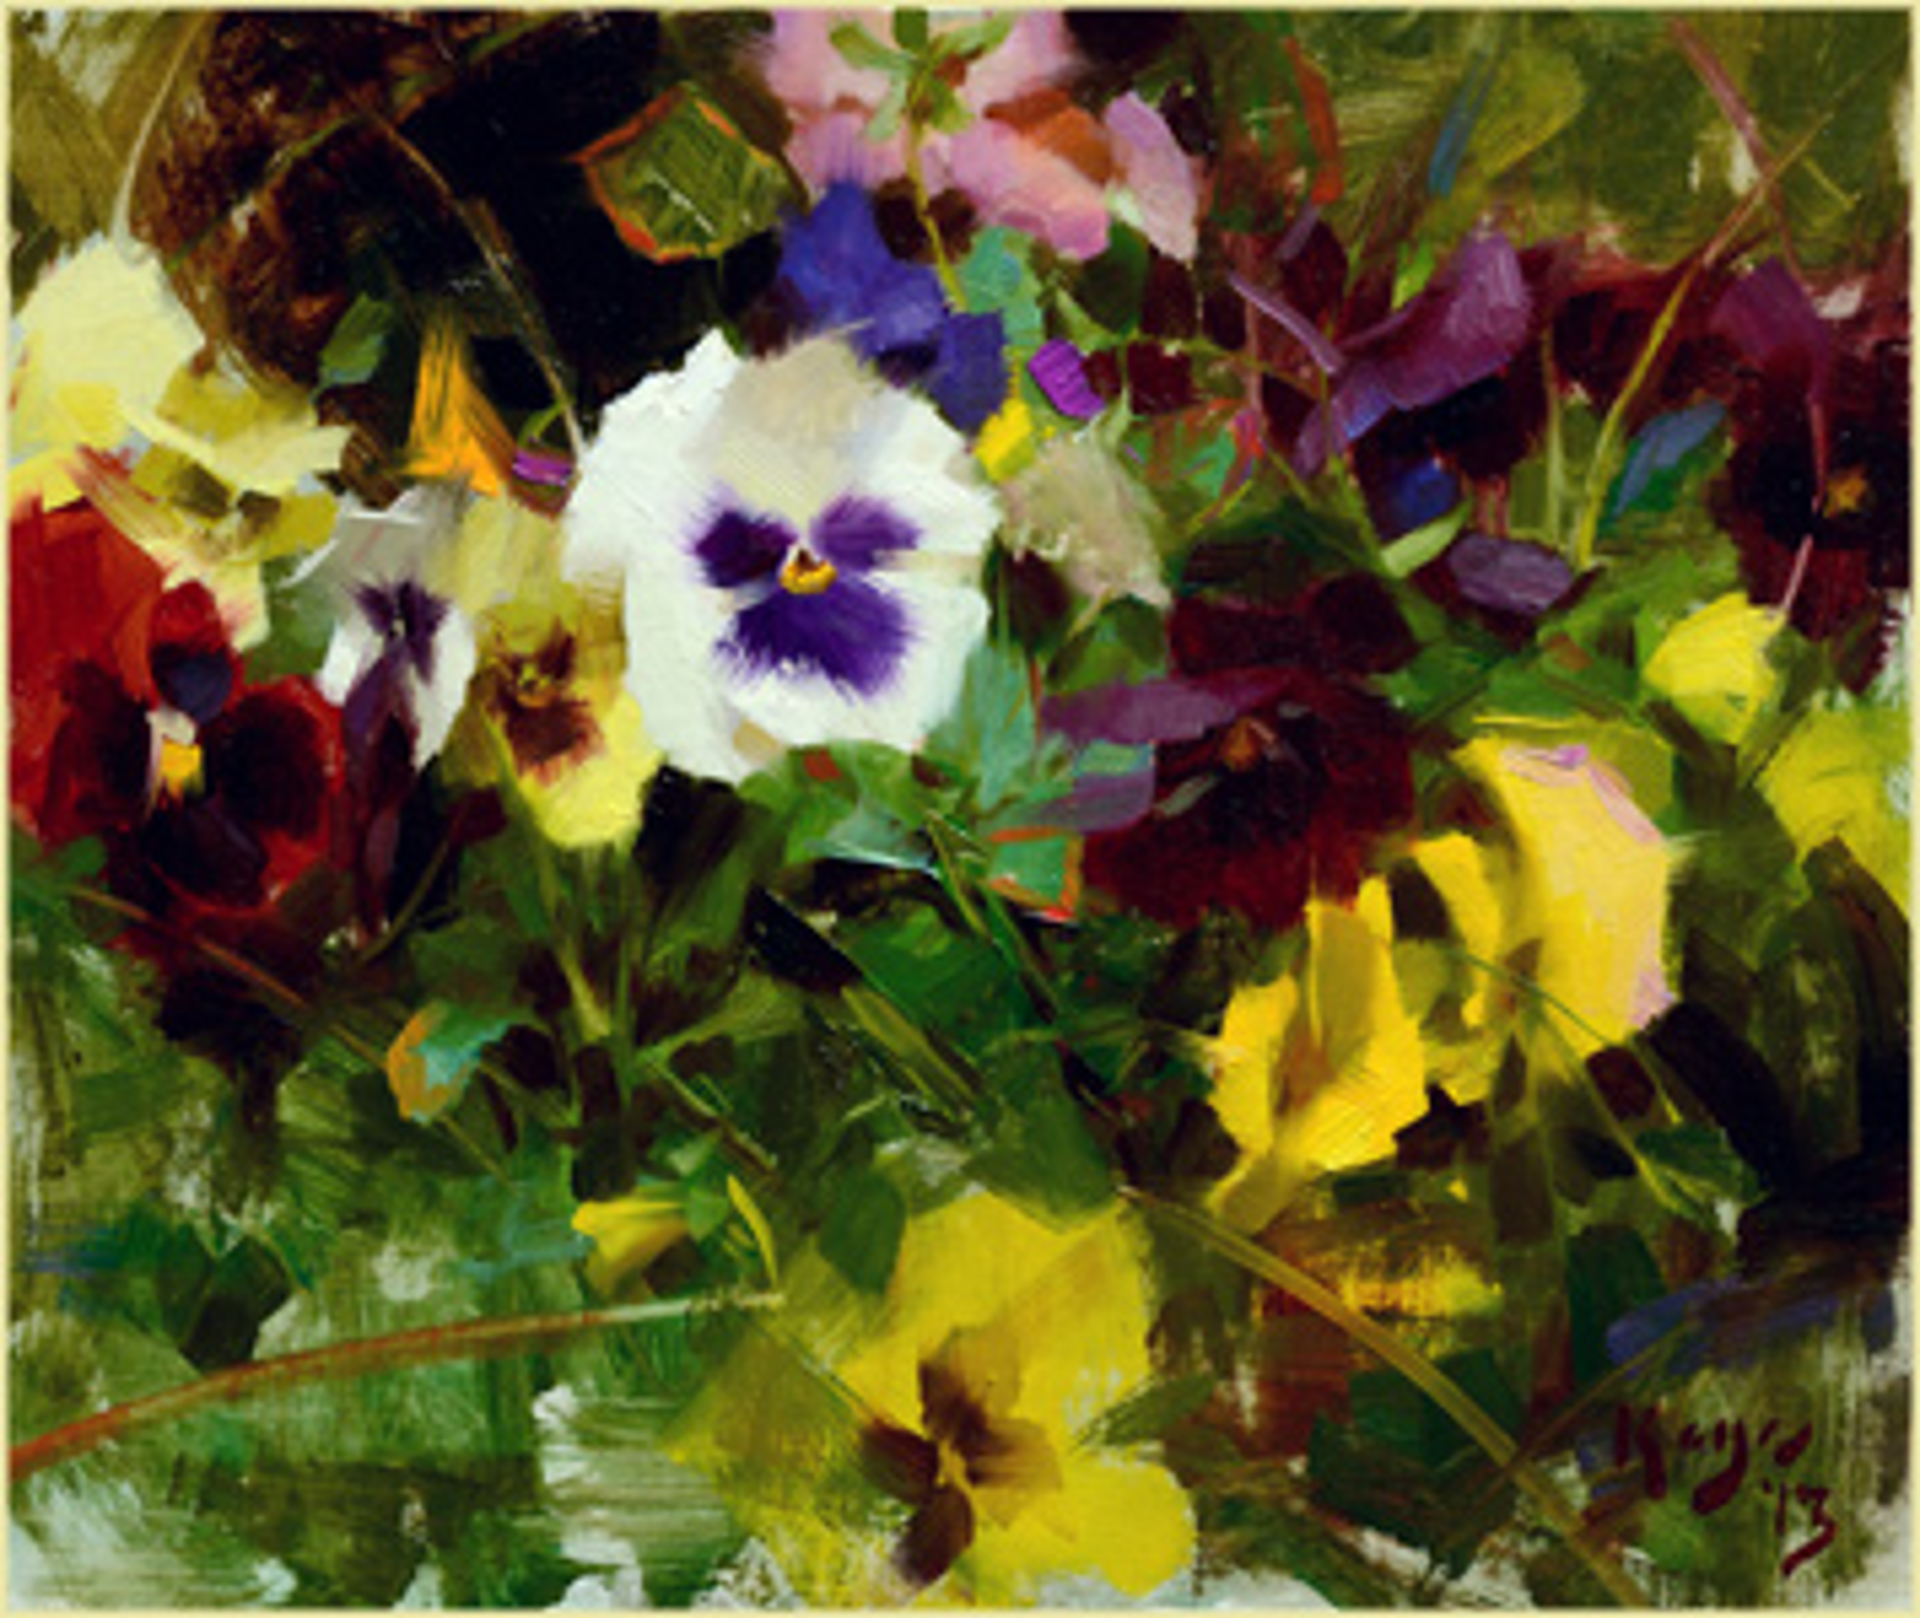 Pansy Song by Daniel Keys